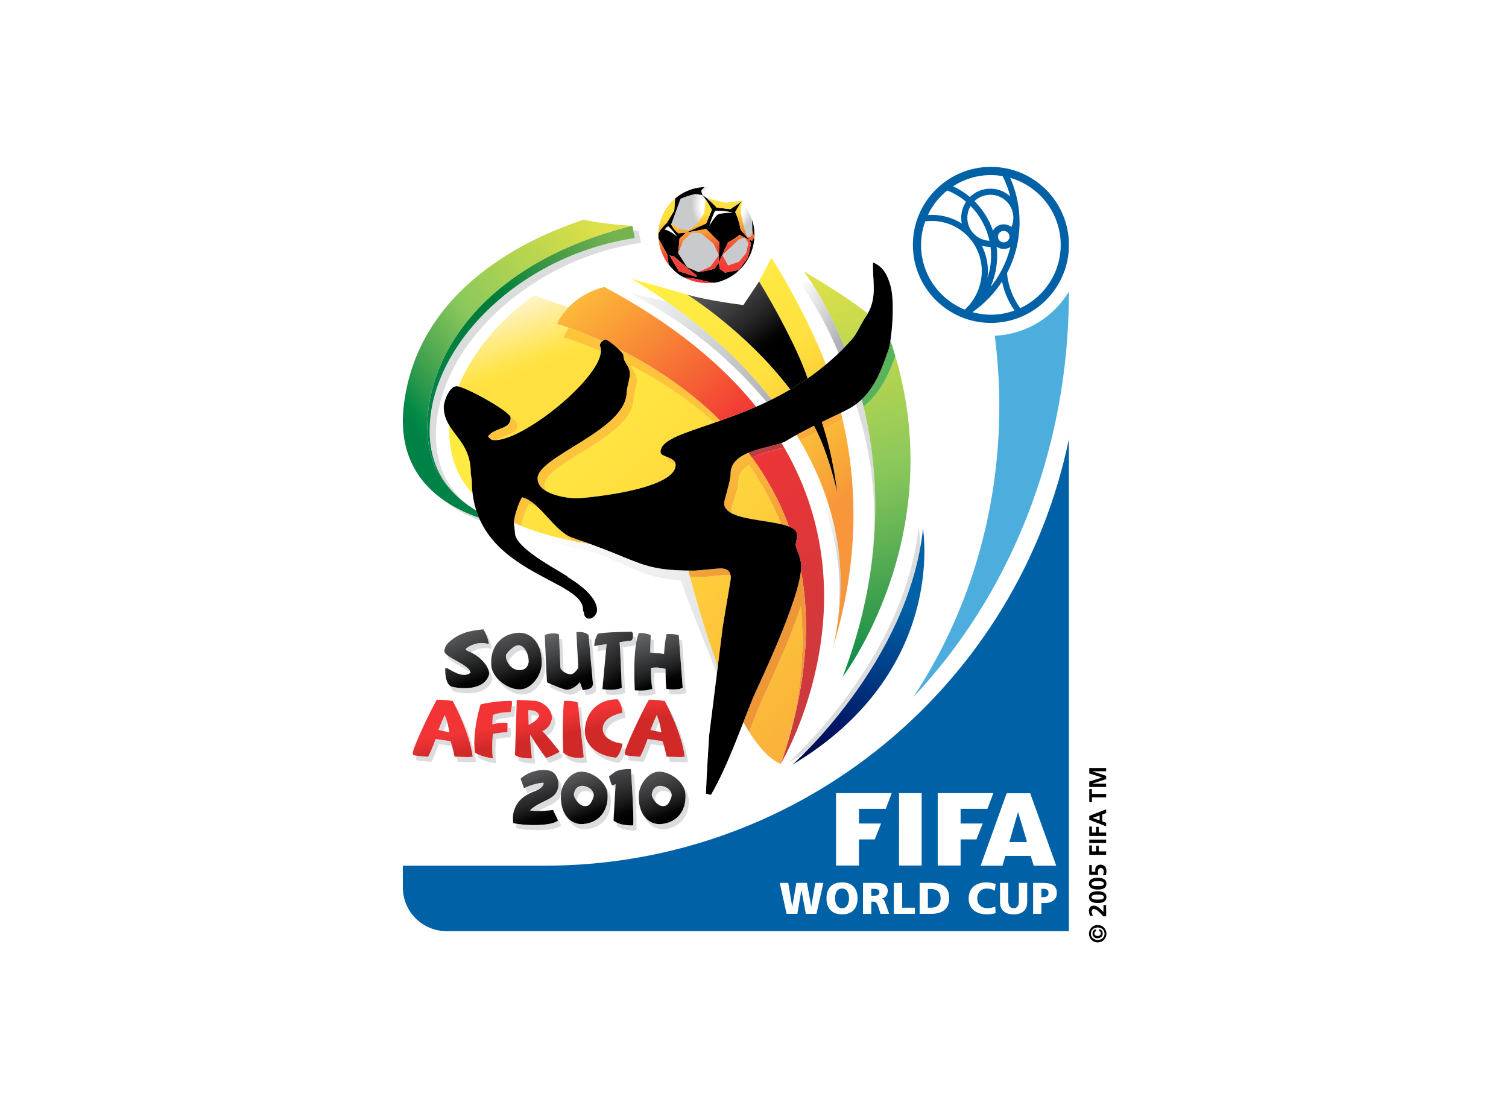 FIFA WM 2010 Logo, Quelle: Wikipedia